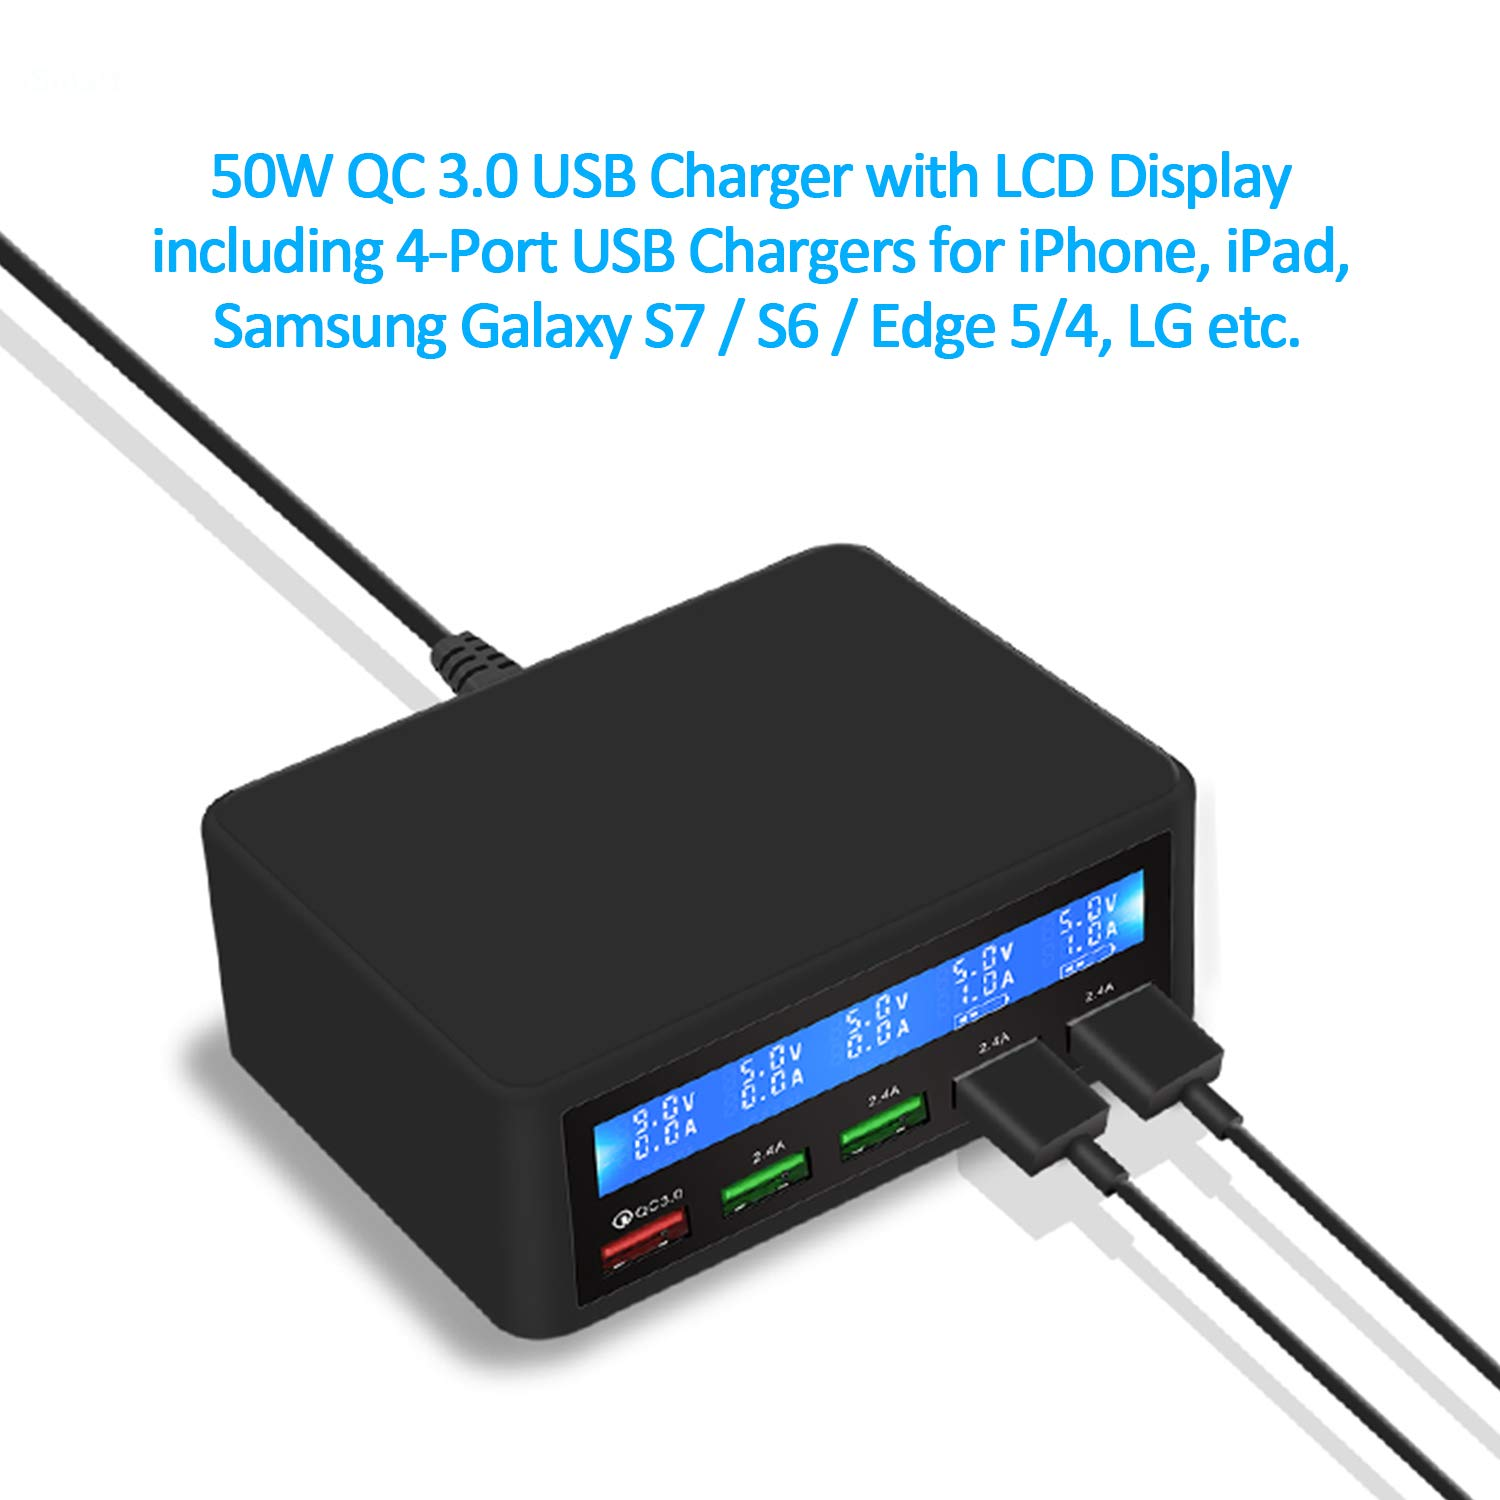 MSM 50W QC 3.0 USB Charger with LCD Display including 5-Port USB Chargers